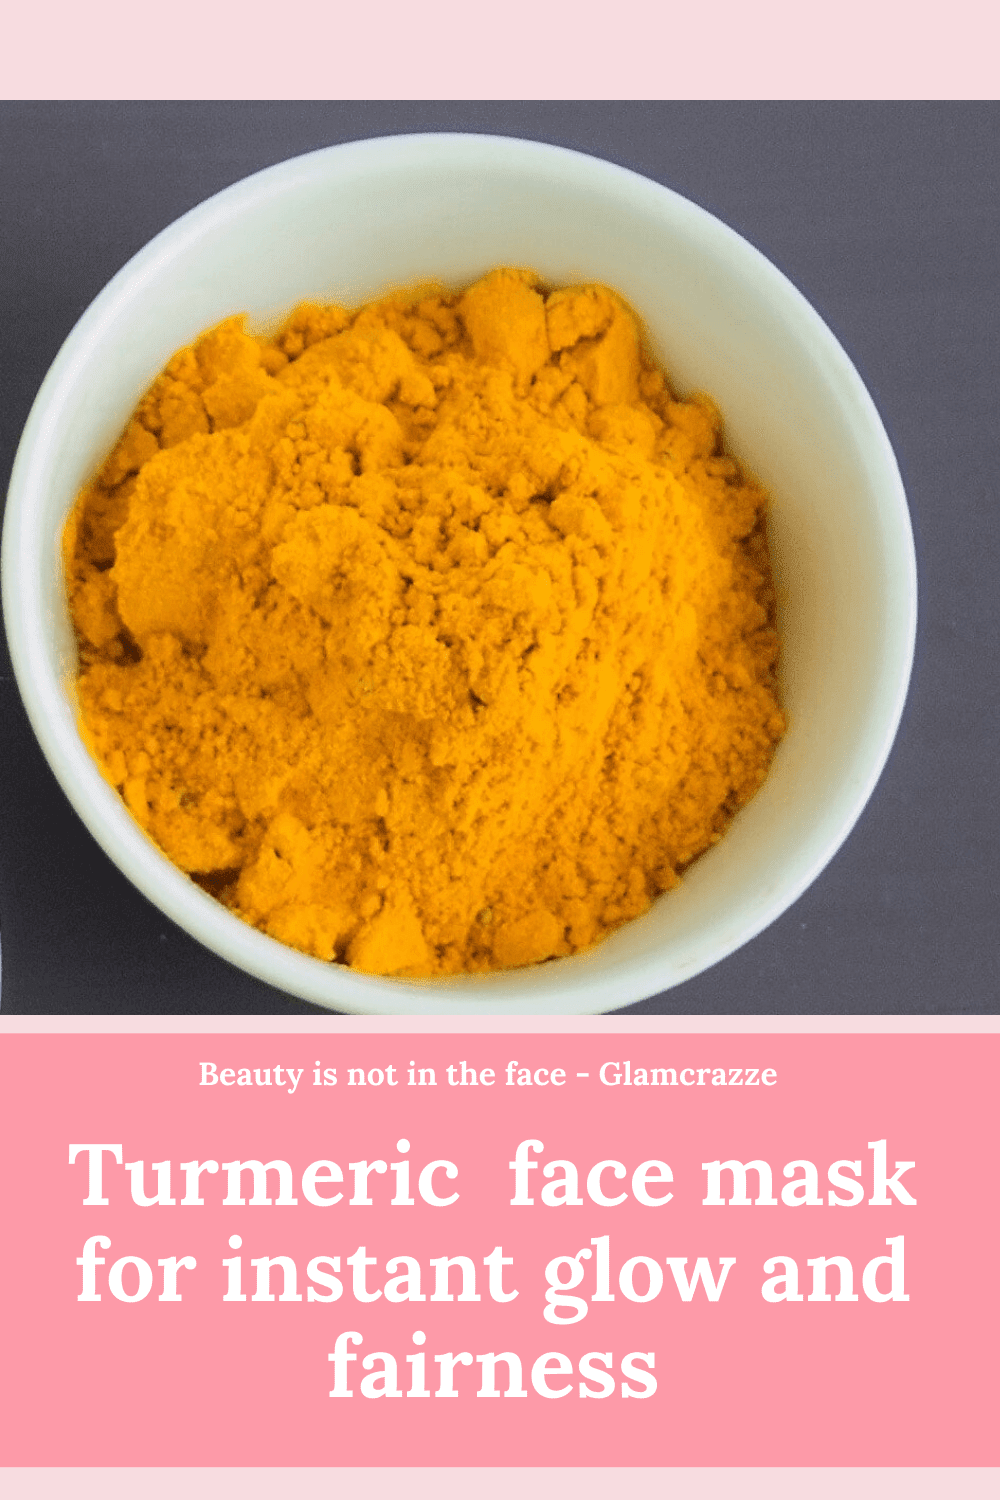 homemade face pack for instant glow and fairness using turmeric